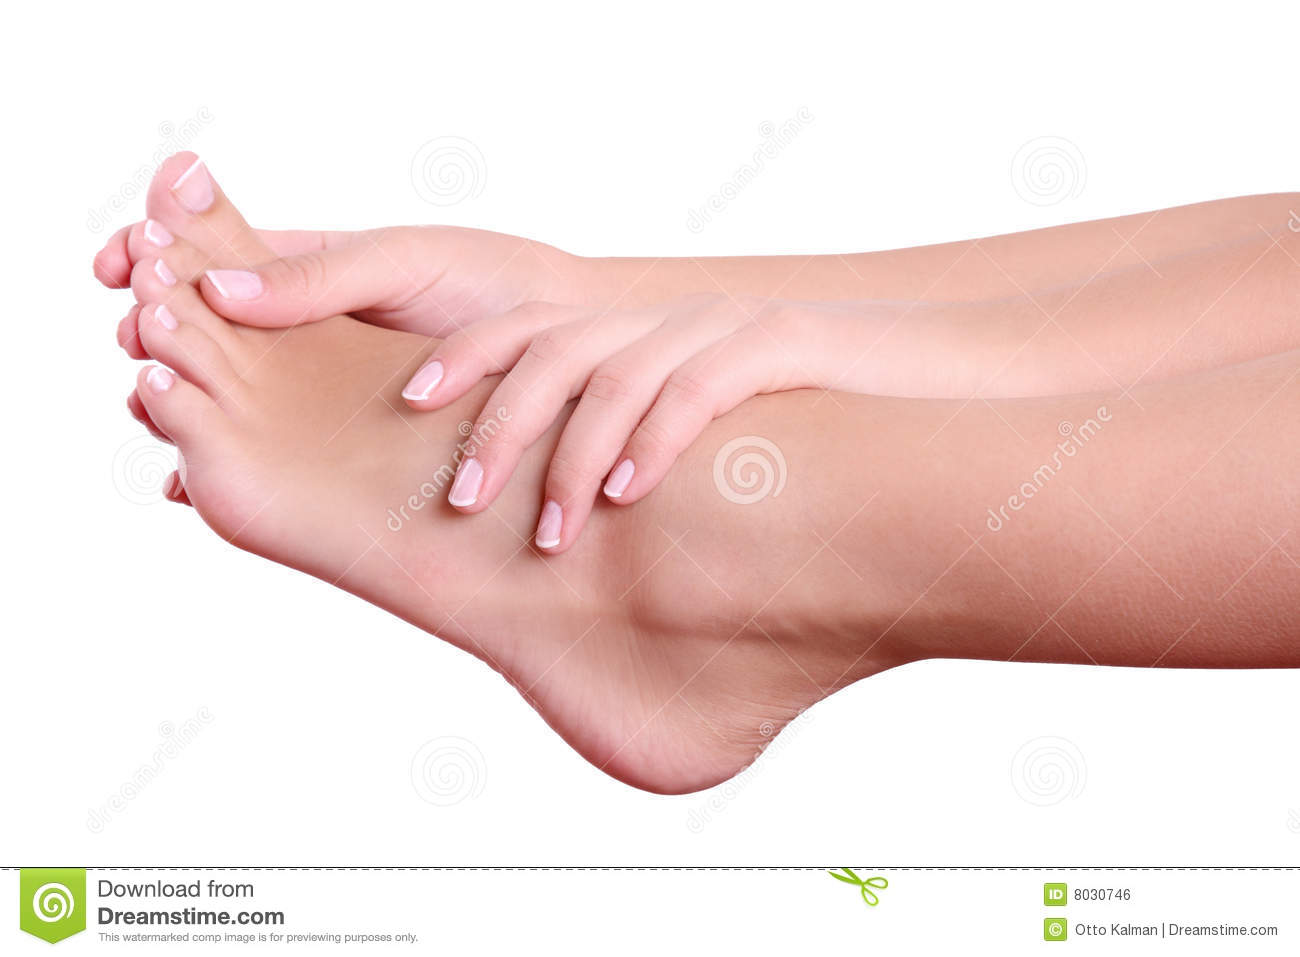 Foot massage business plan